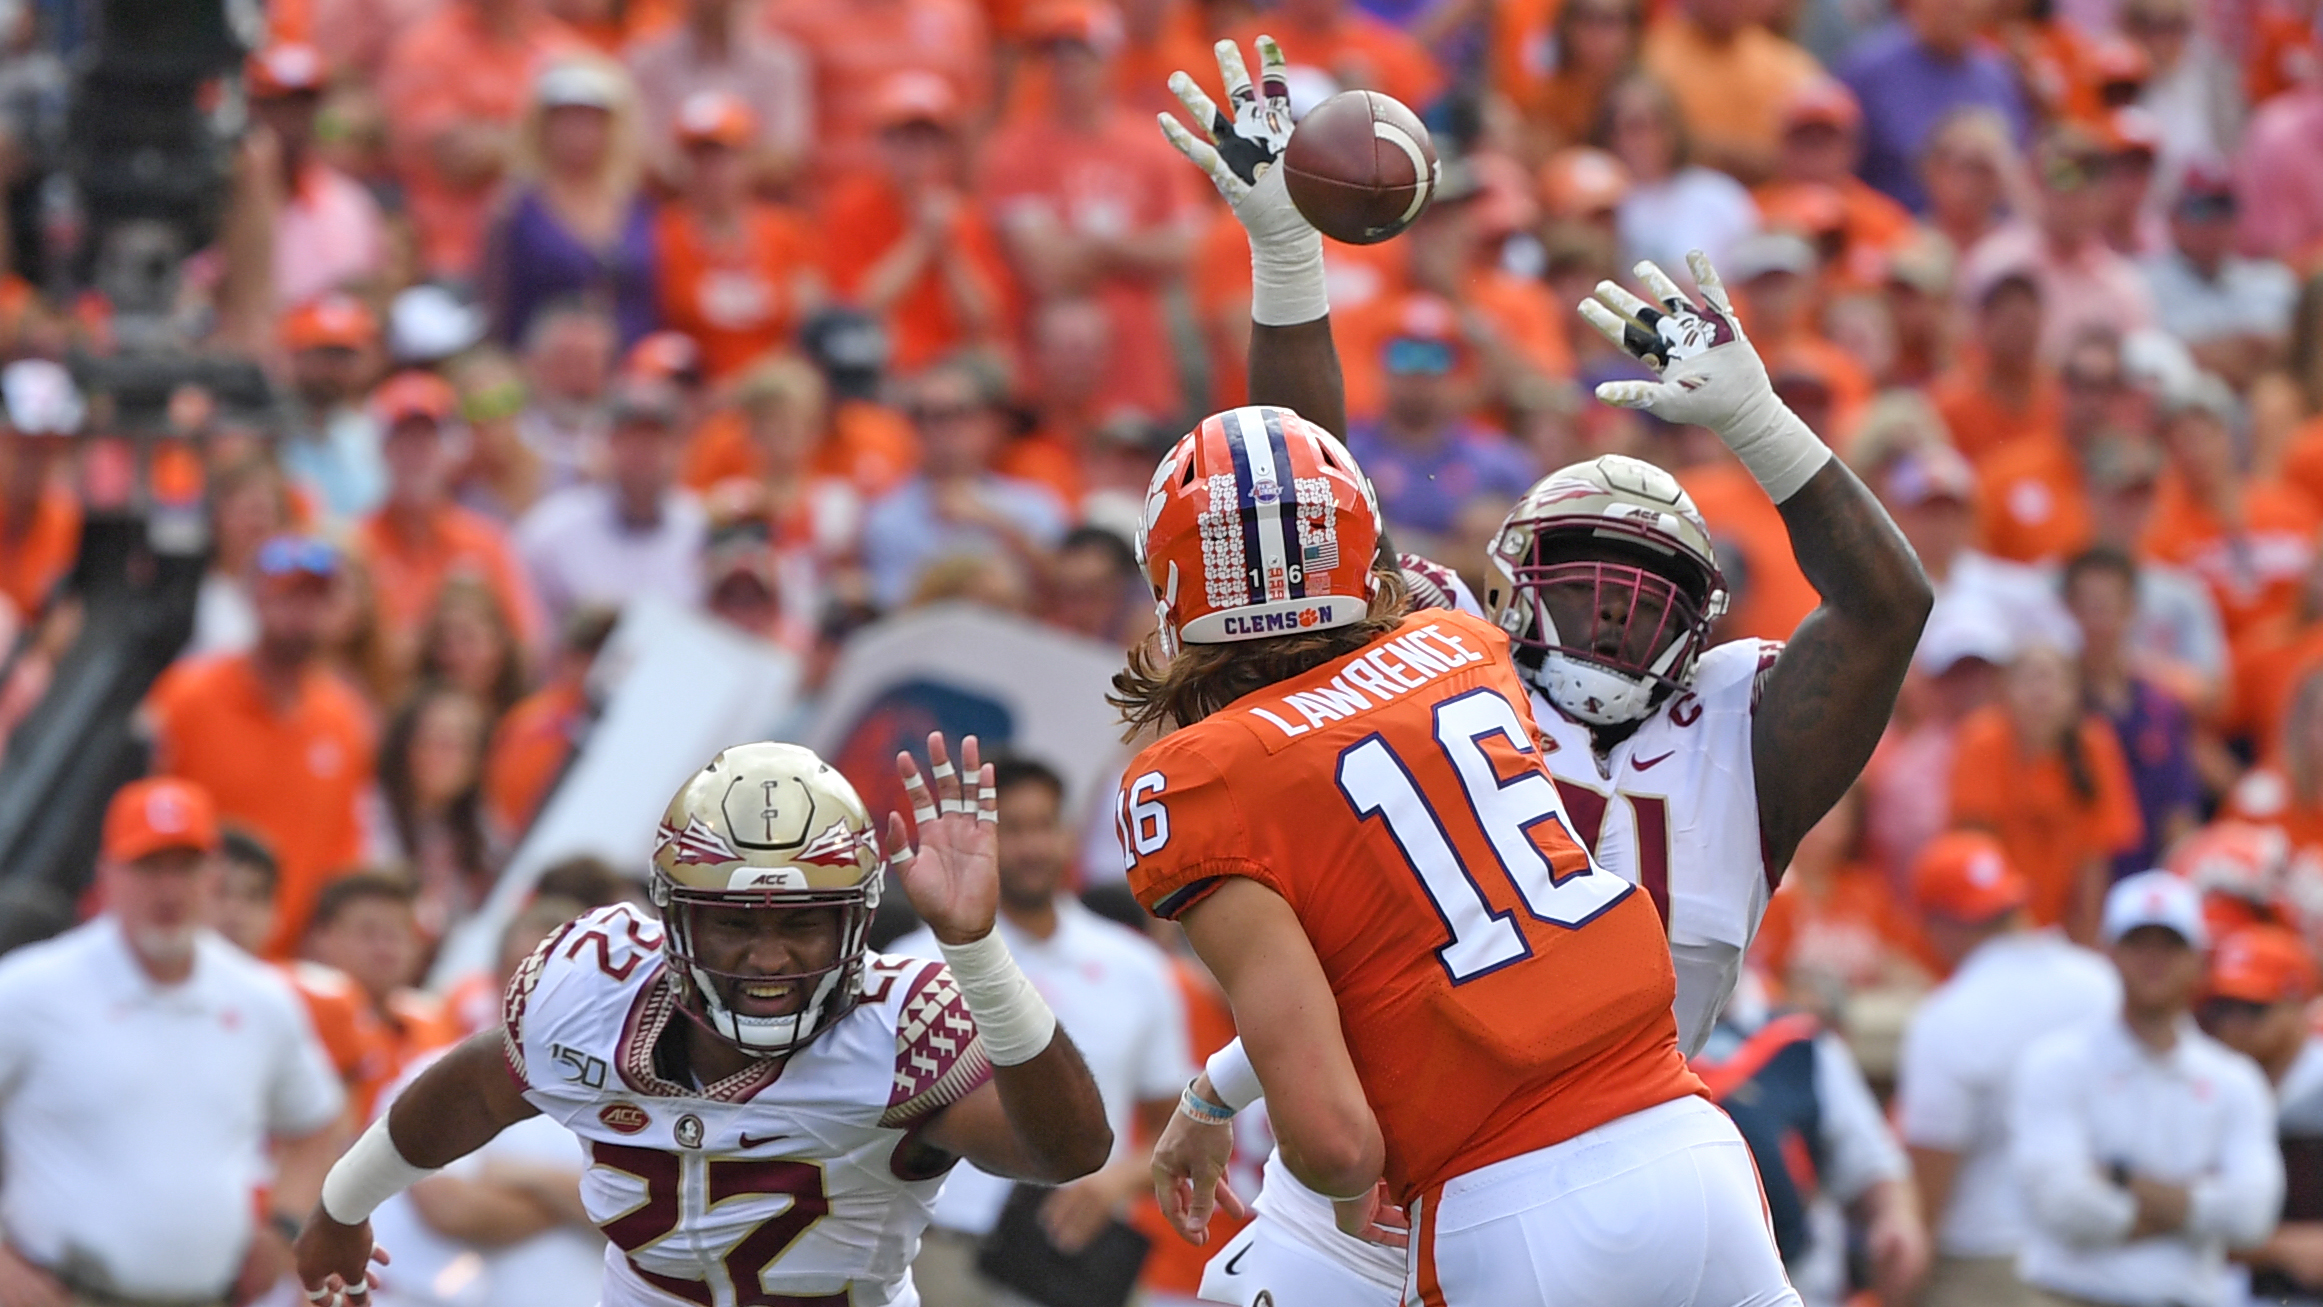 Photos: FSU vs. Clemson